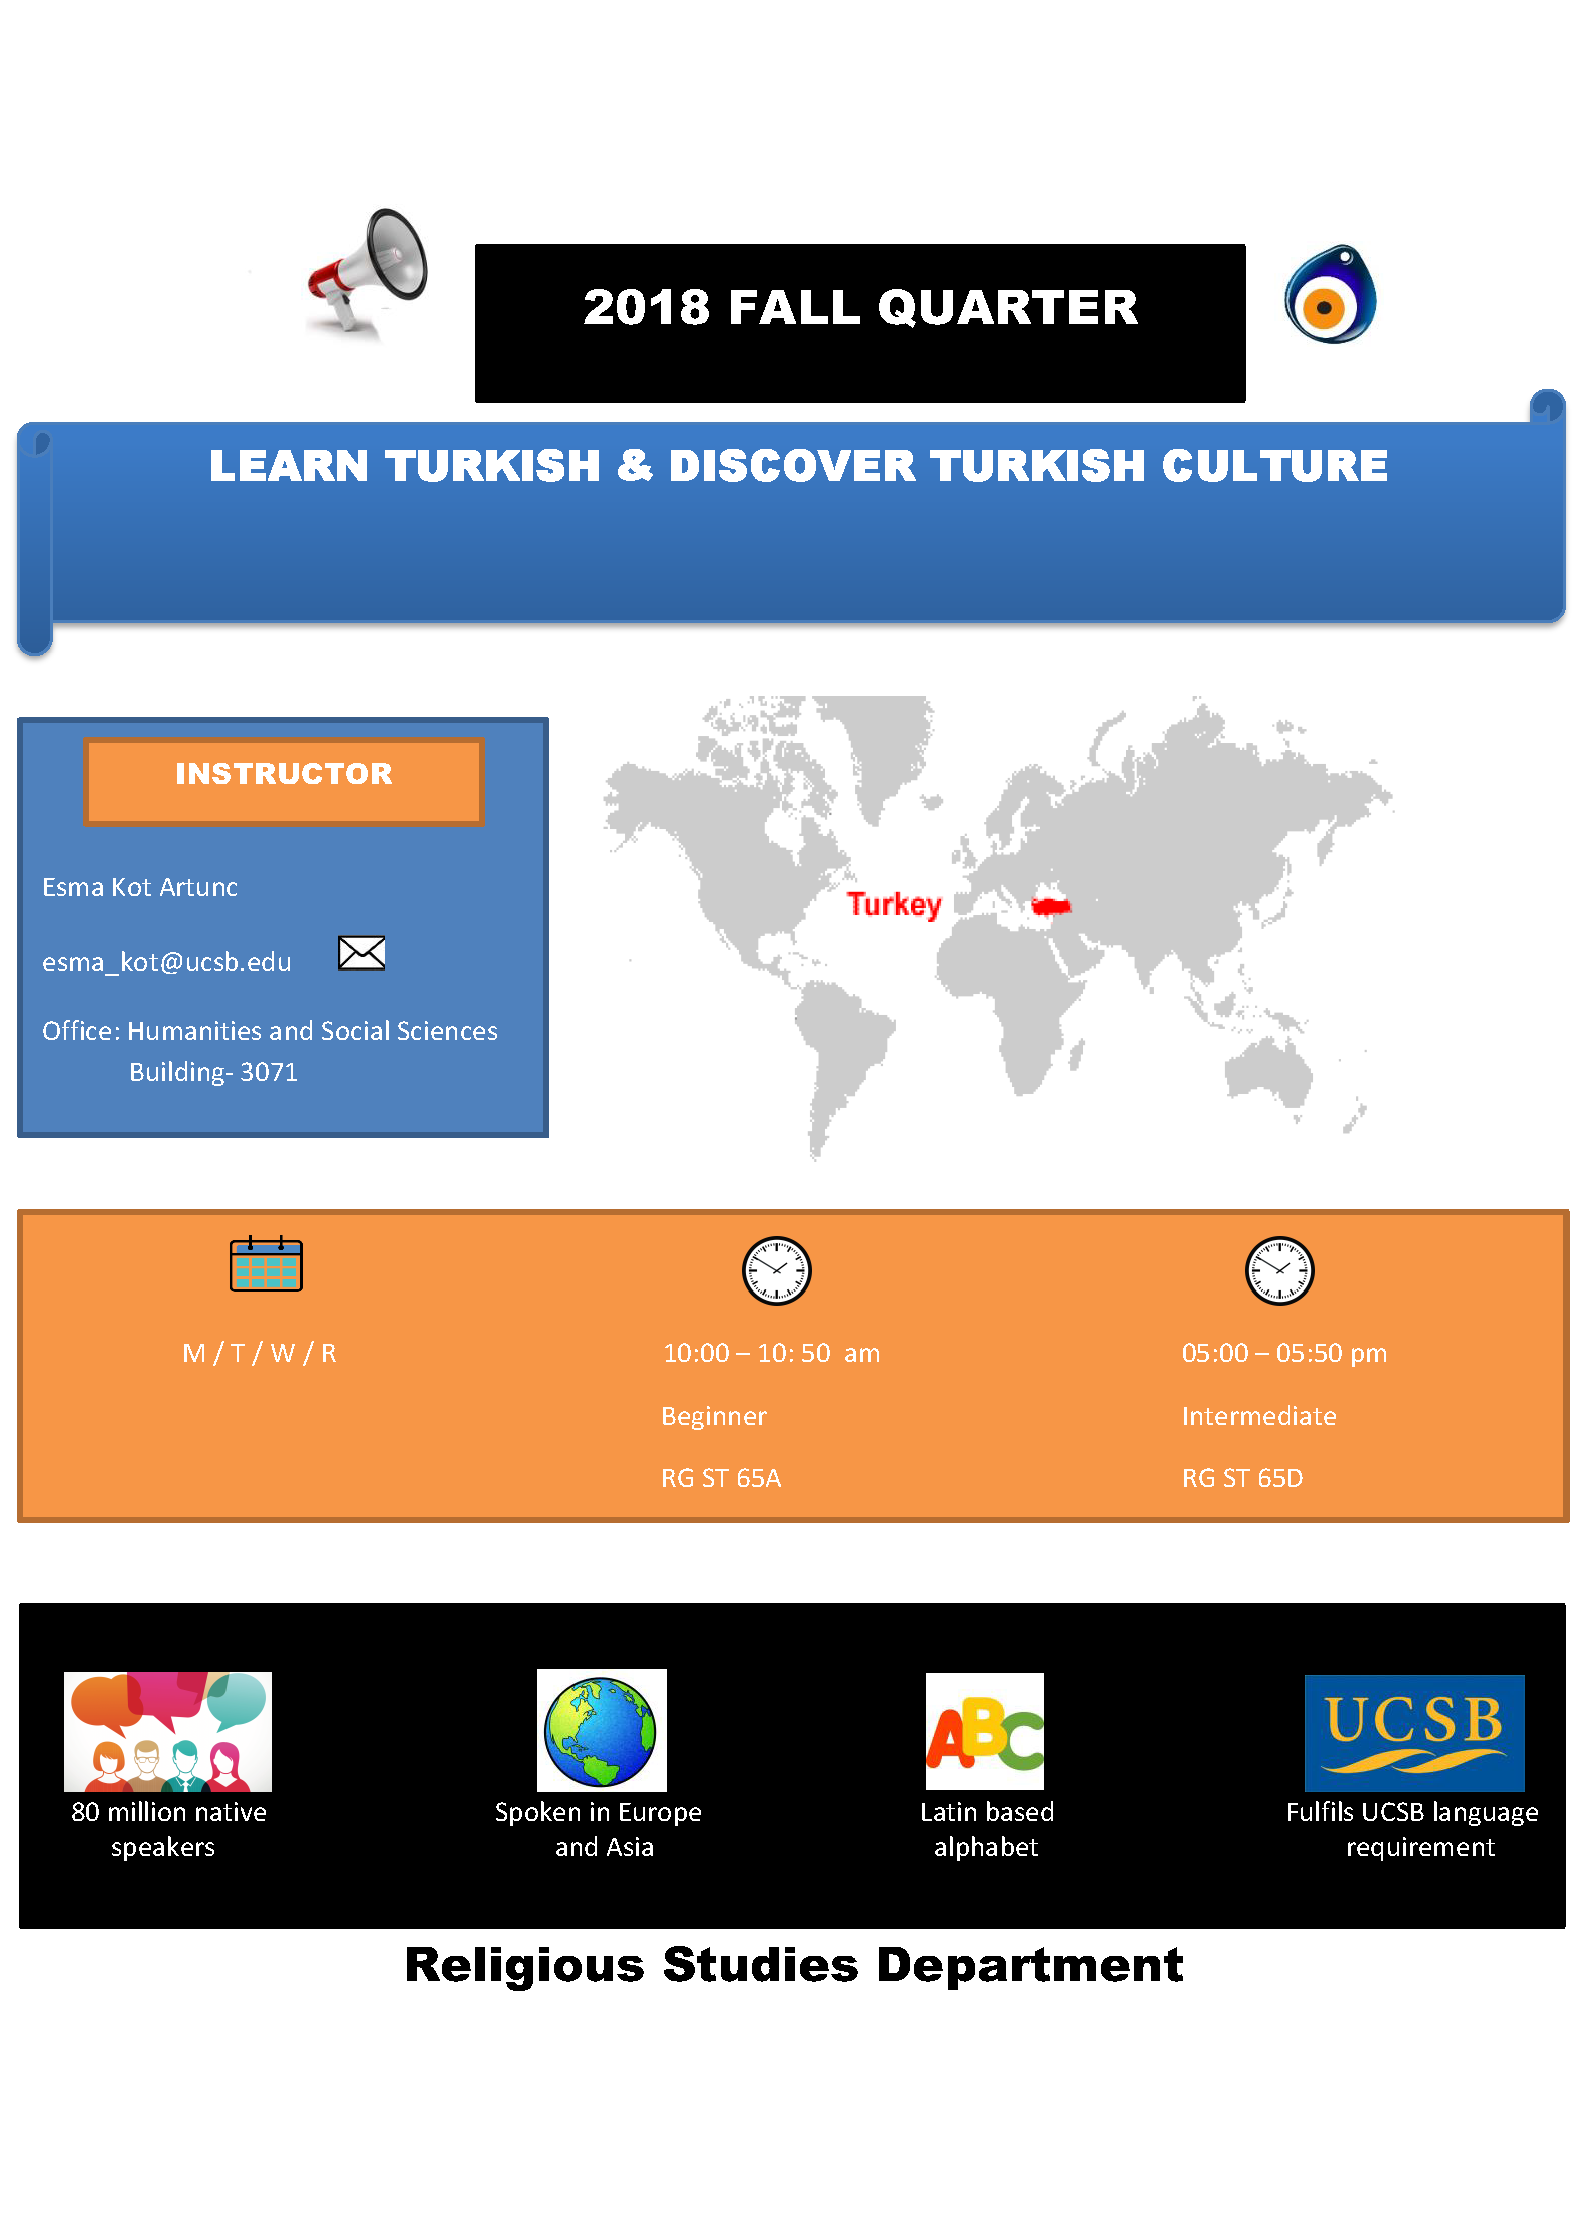 Flier announcing Turkish culture classes.